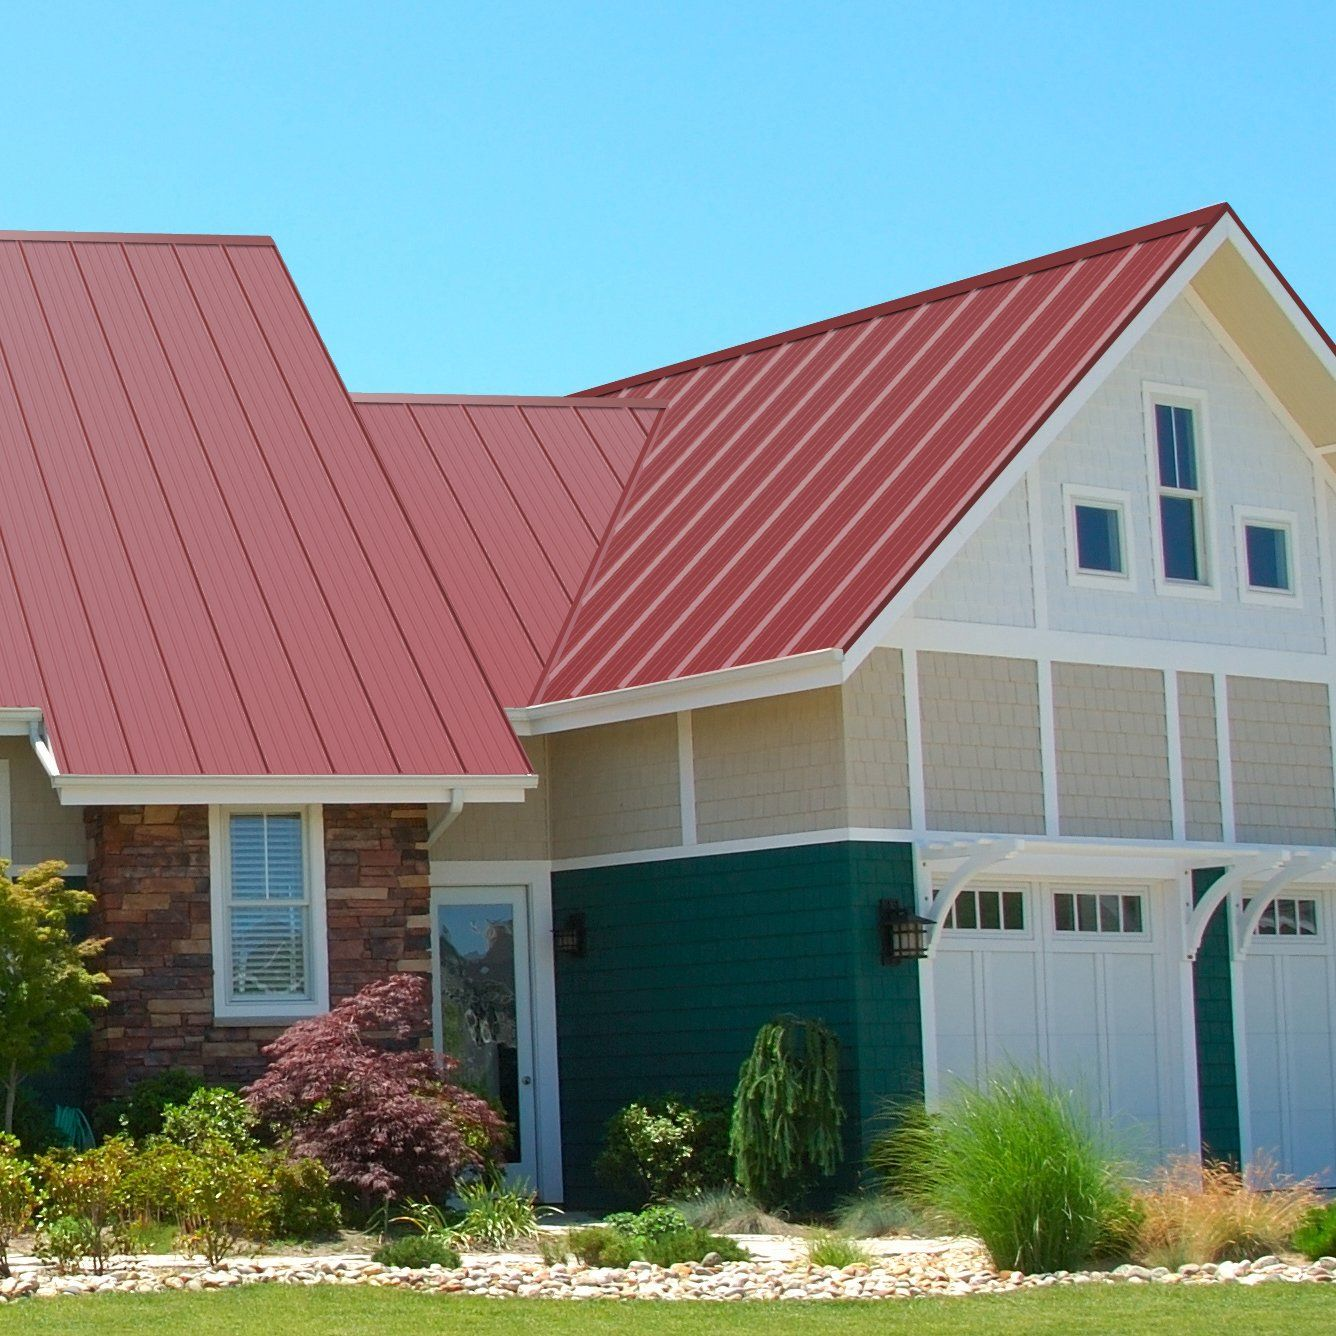 Explore Aluminum Roofing, Steel Roofing, And More!